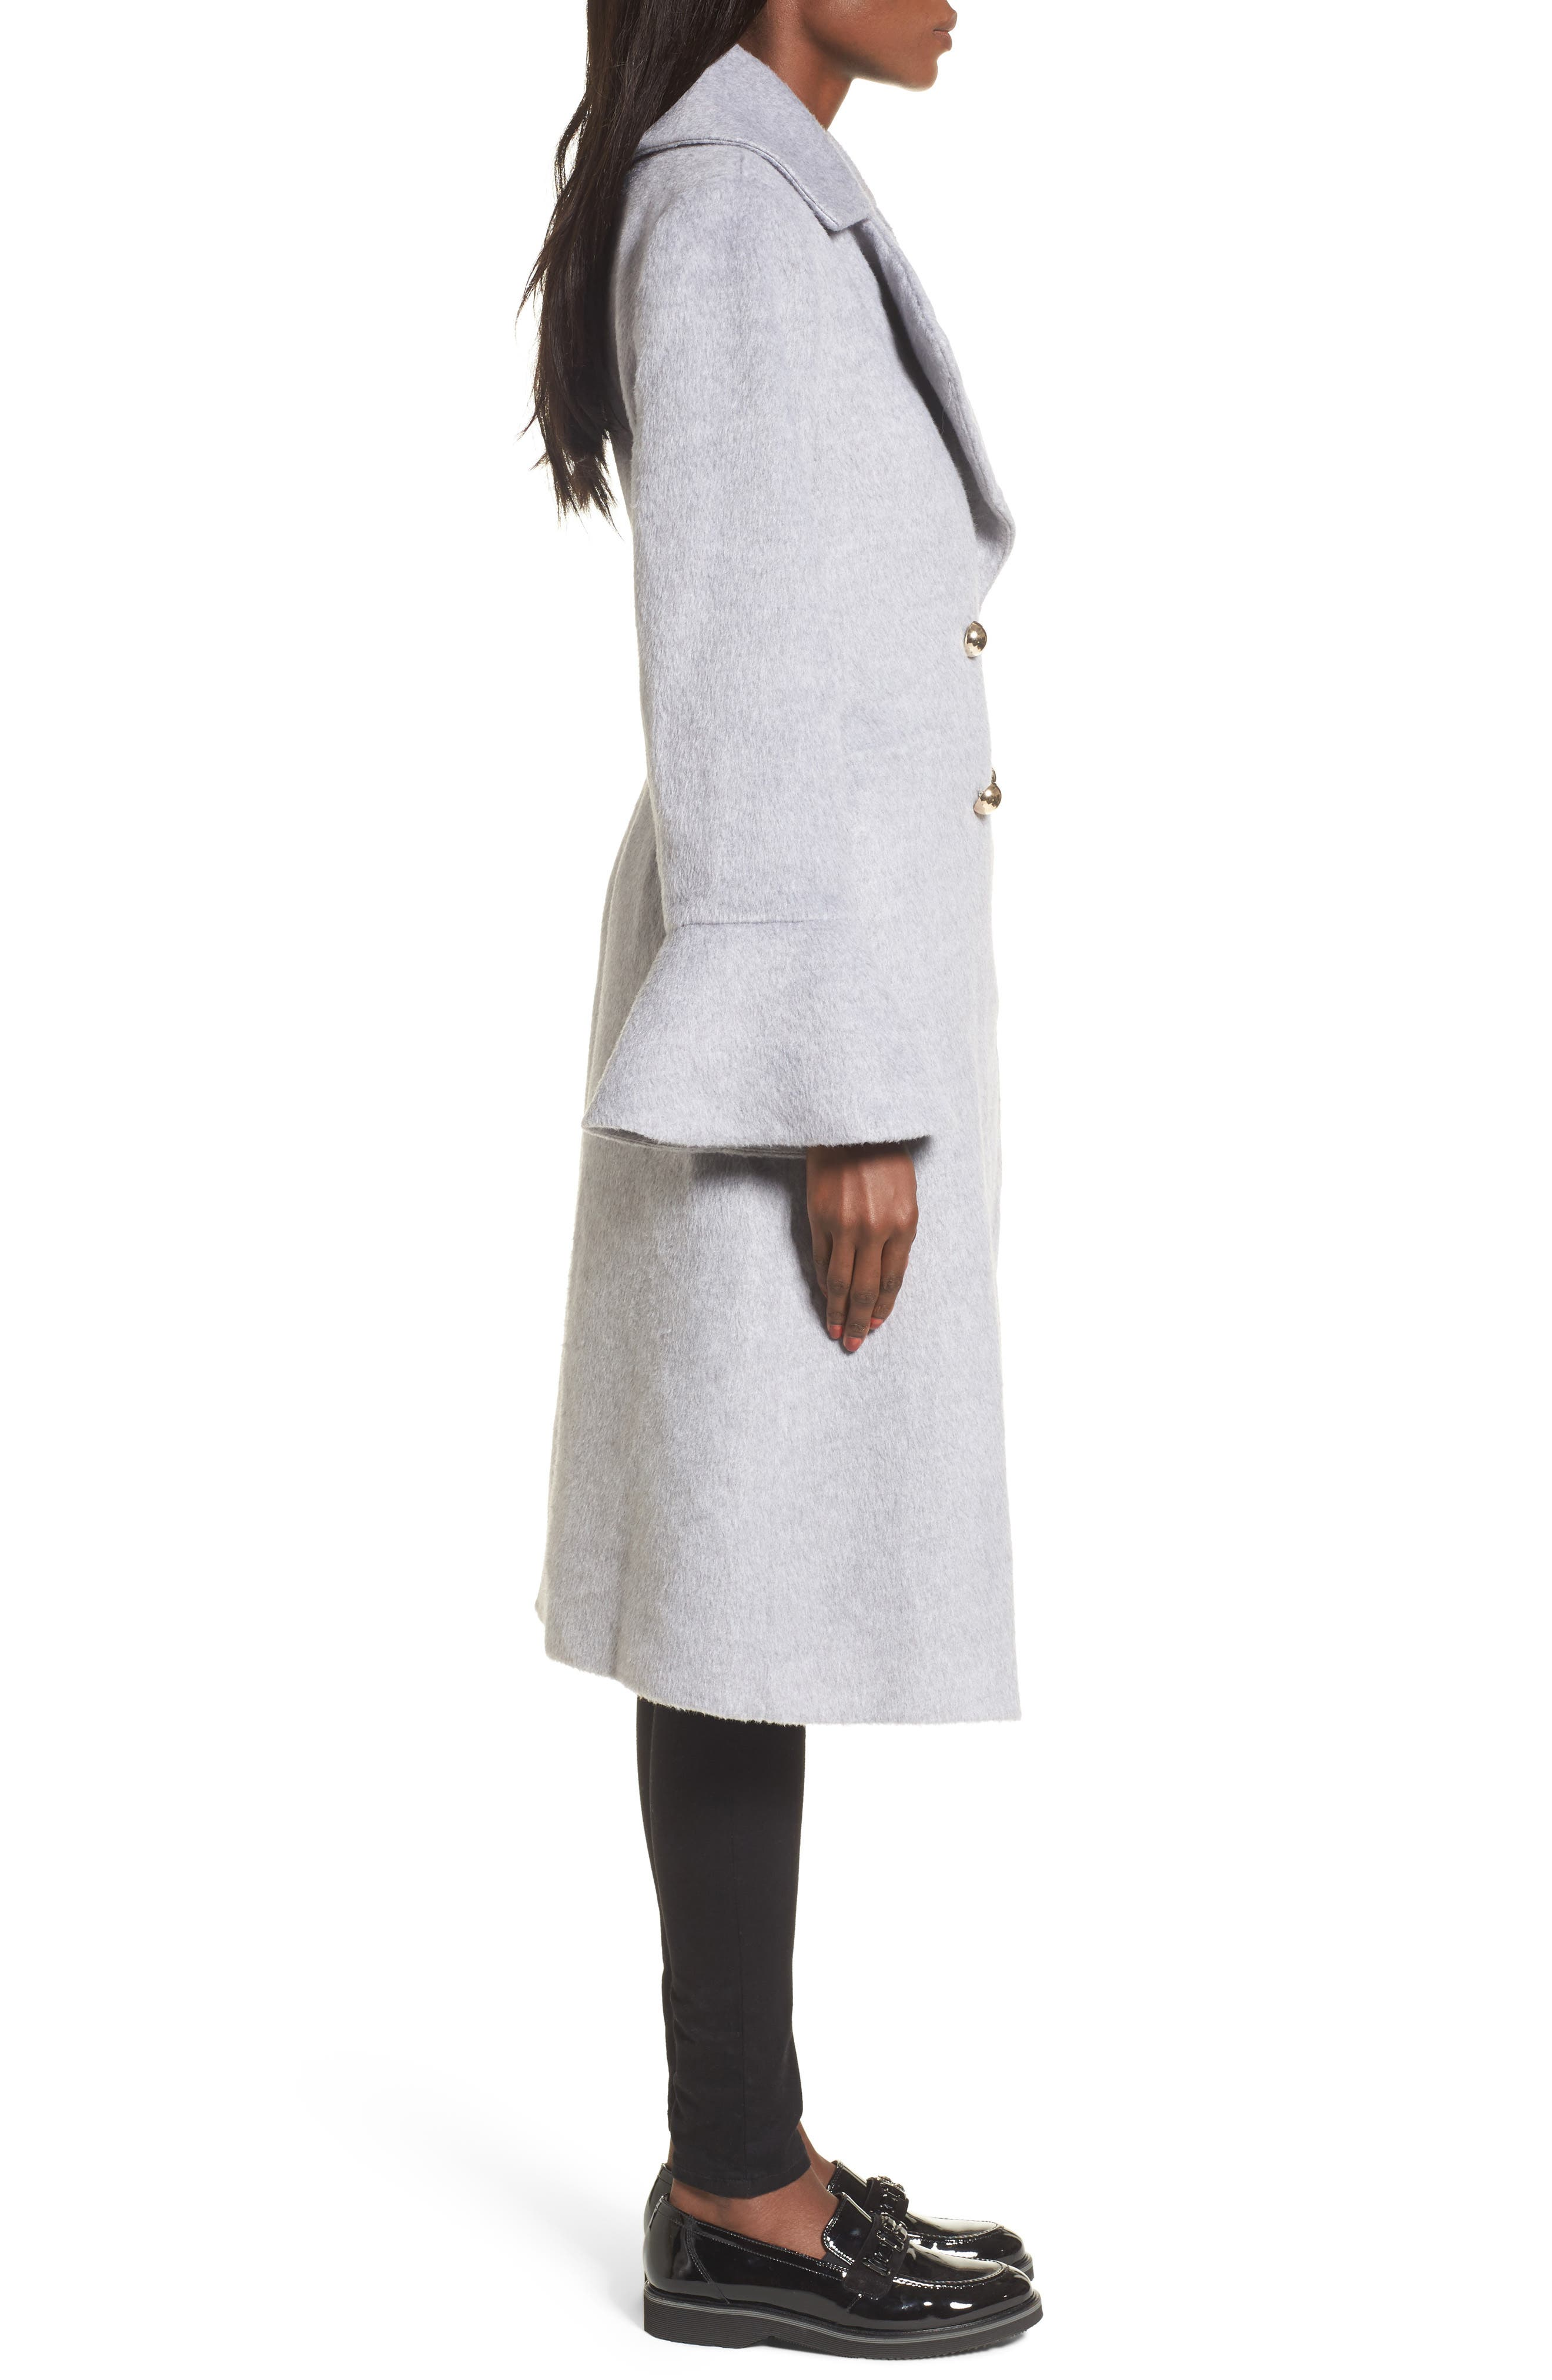 Intuition Water Repellent Coat,                             Alternate thumbnail 3, color,                             020